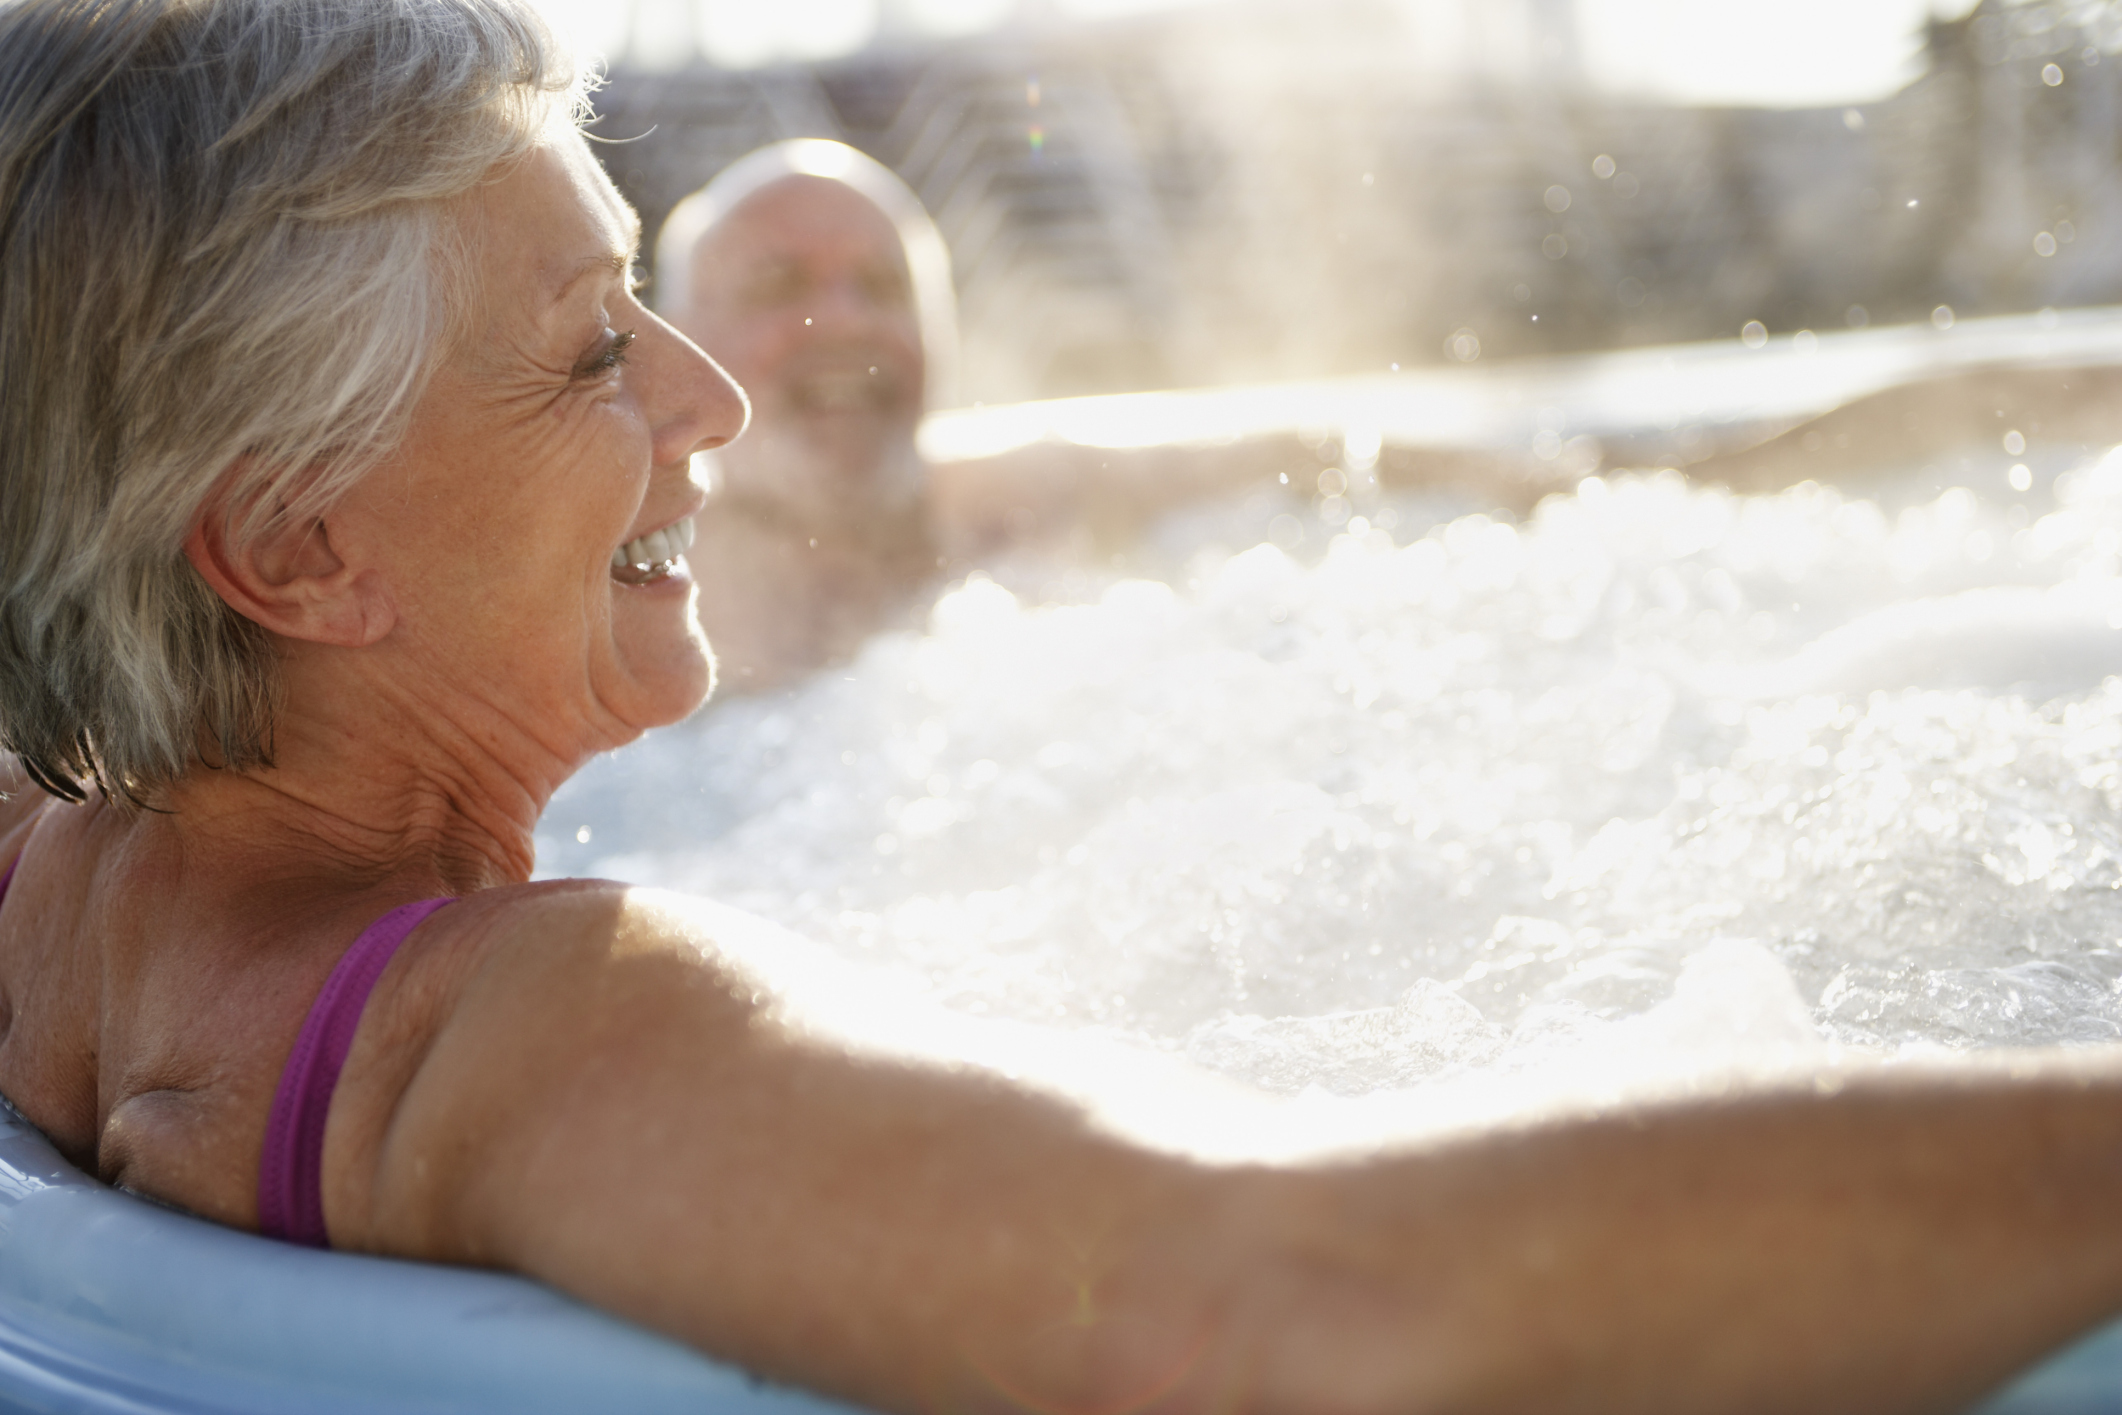 Pros and Cons of a Hot Tub | LIVESTRONG.COM